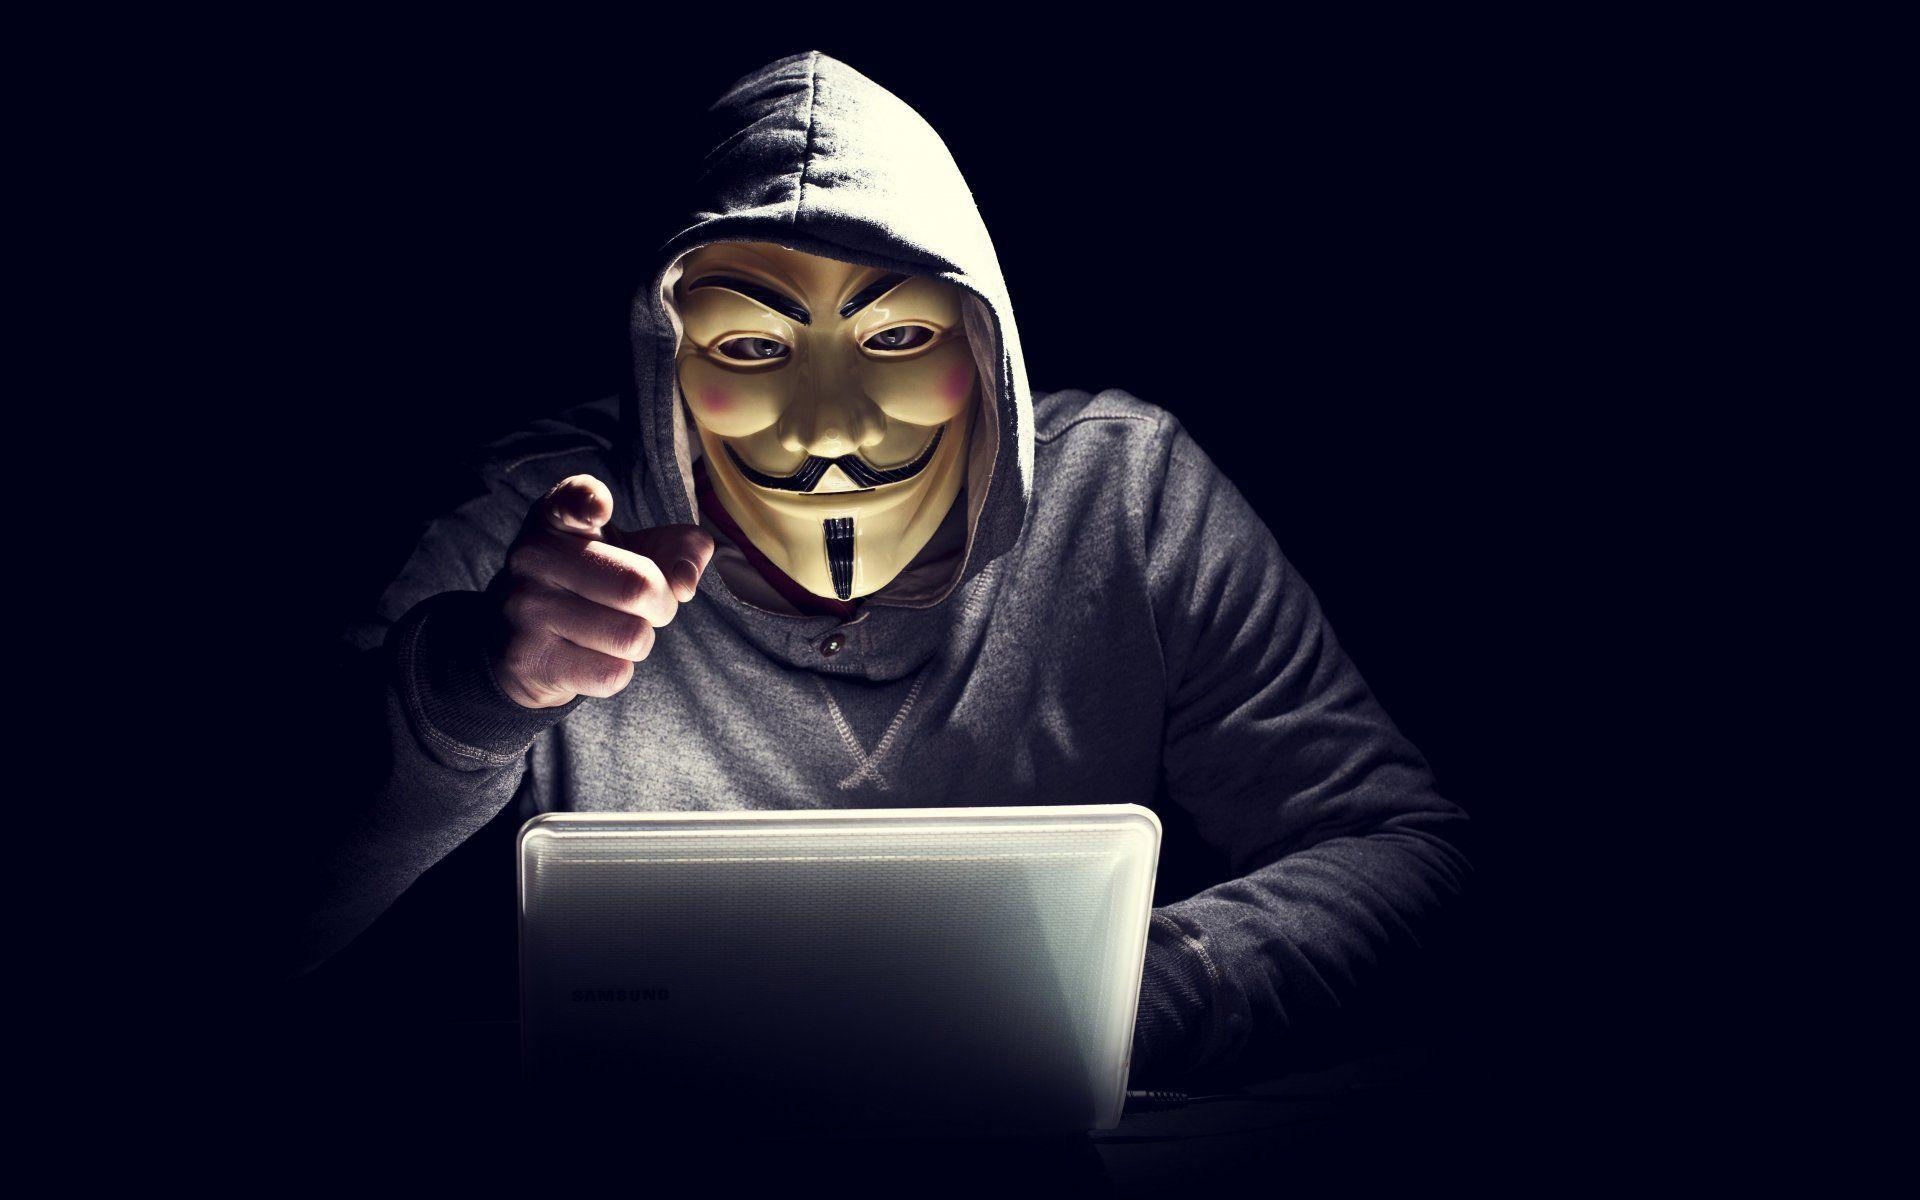 Anonymous Hacker Wallpapers Wallpaper Cave